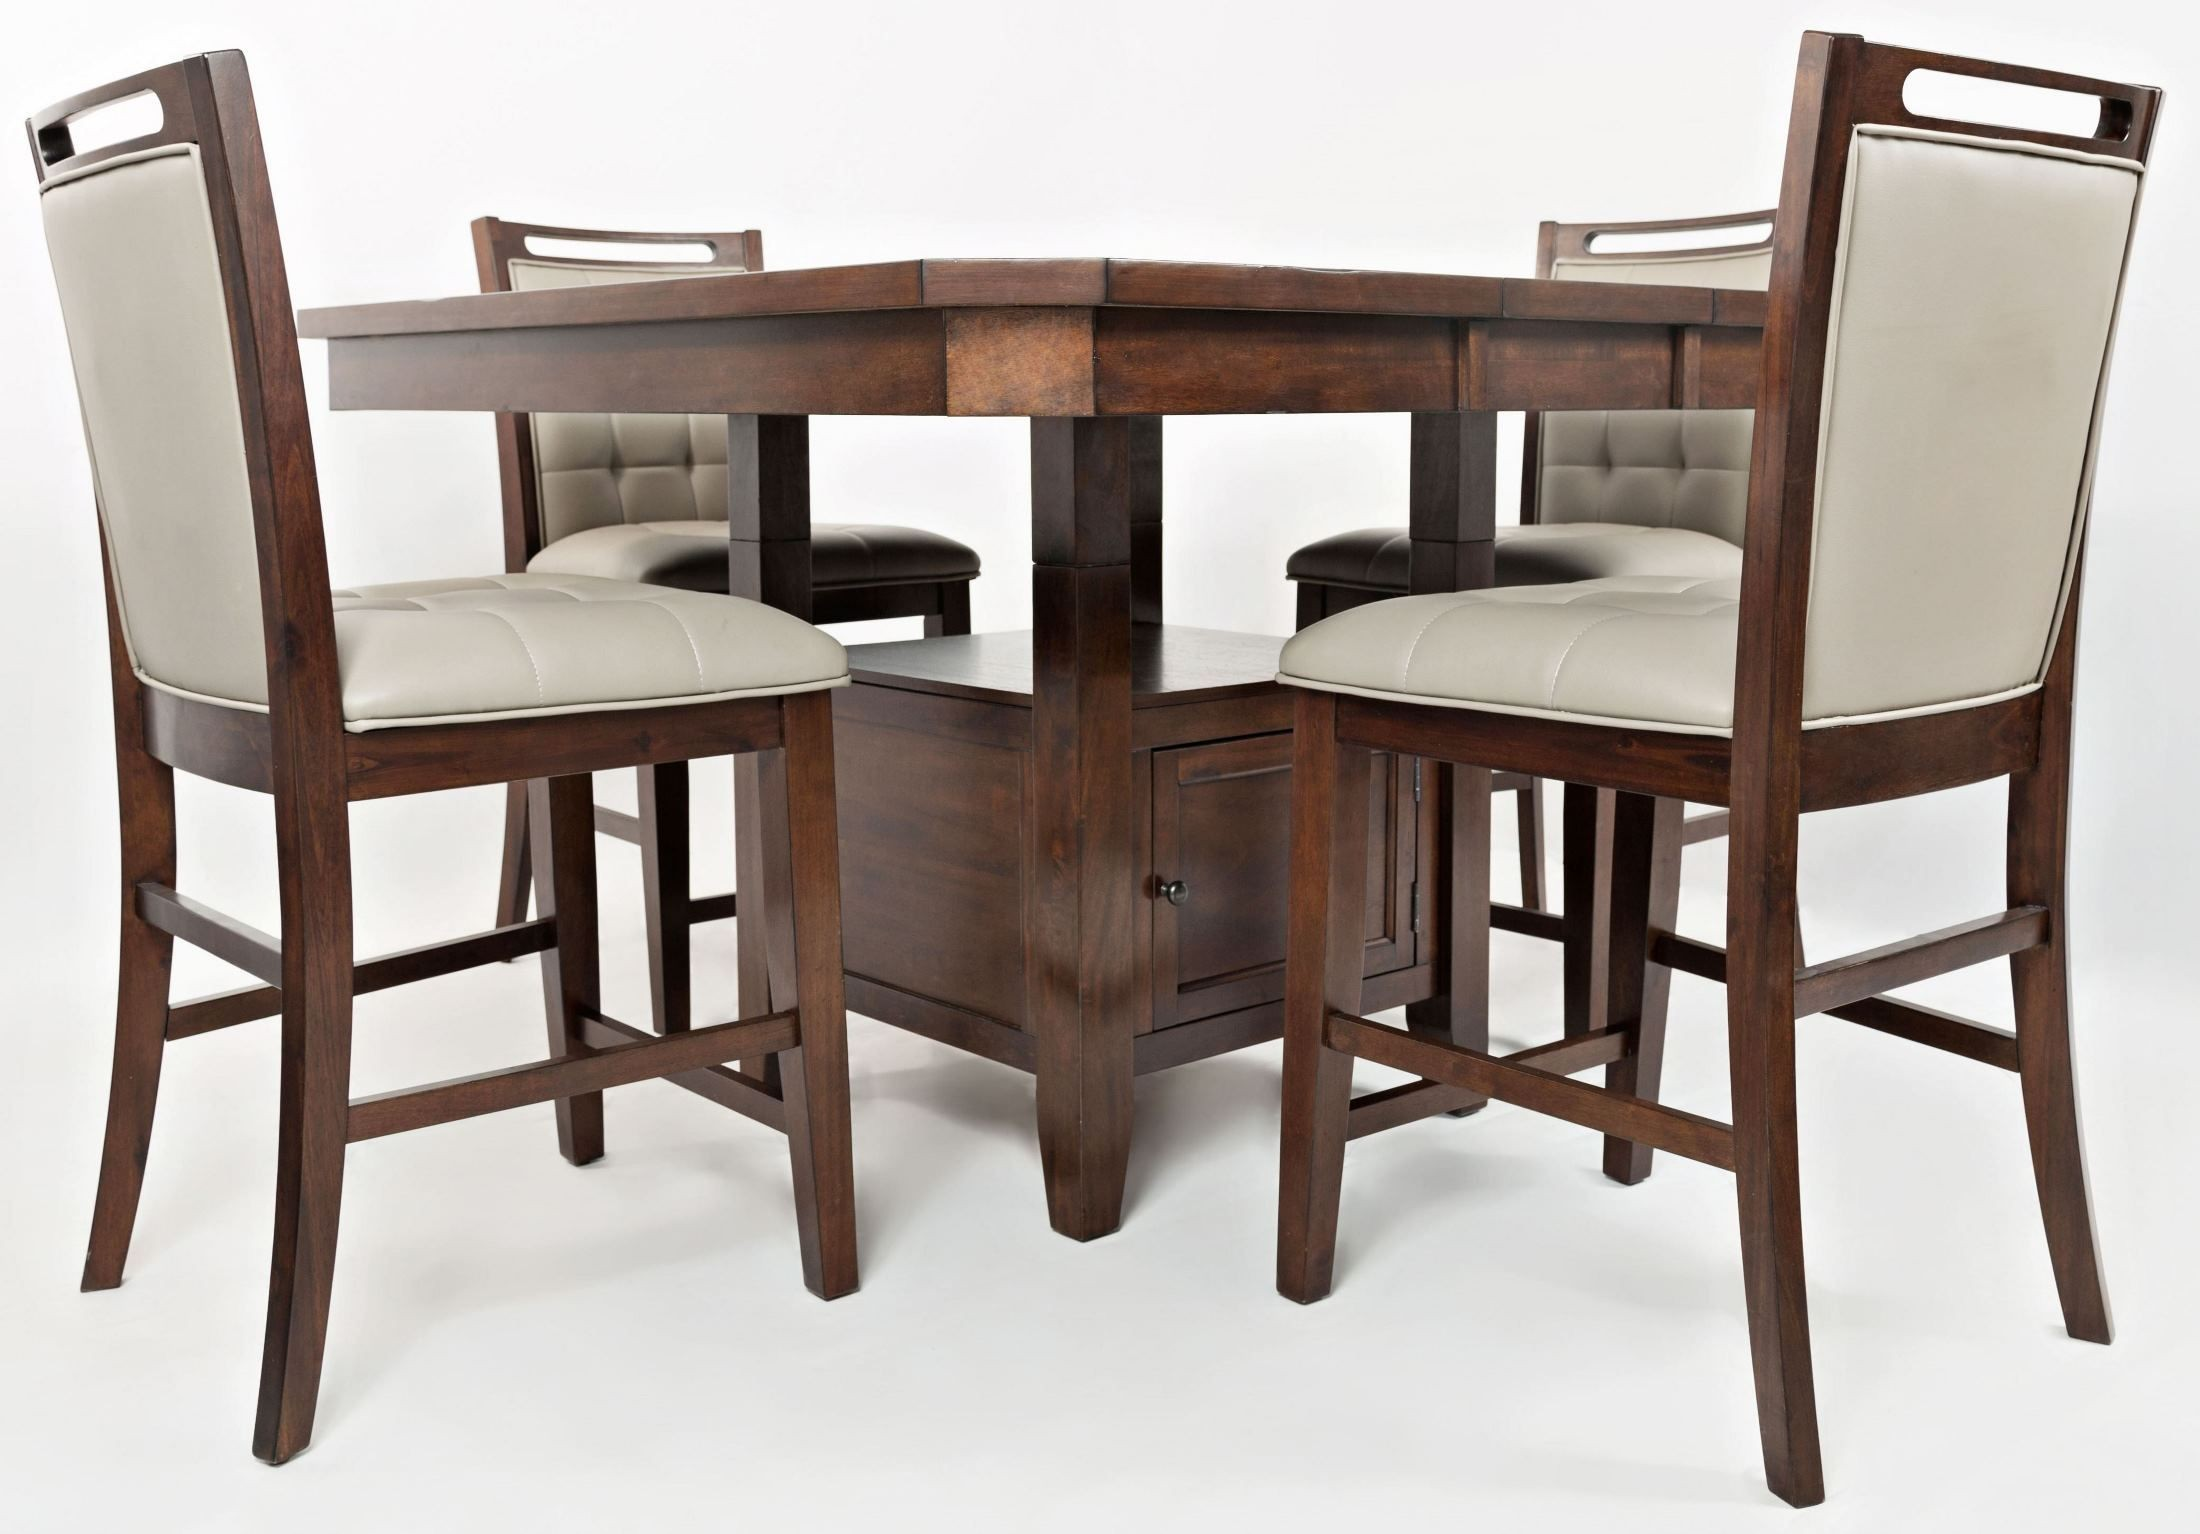 Manchester storage extendable dining room set from jofran coleman furniture - Dining room sets with storage ...